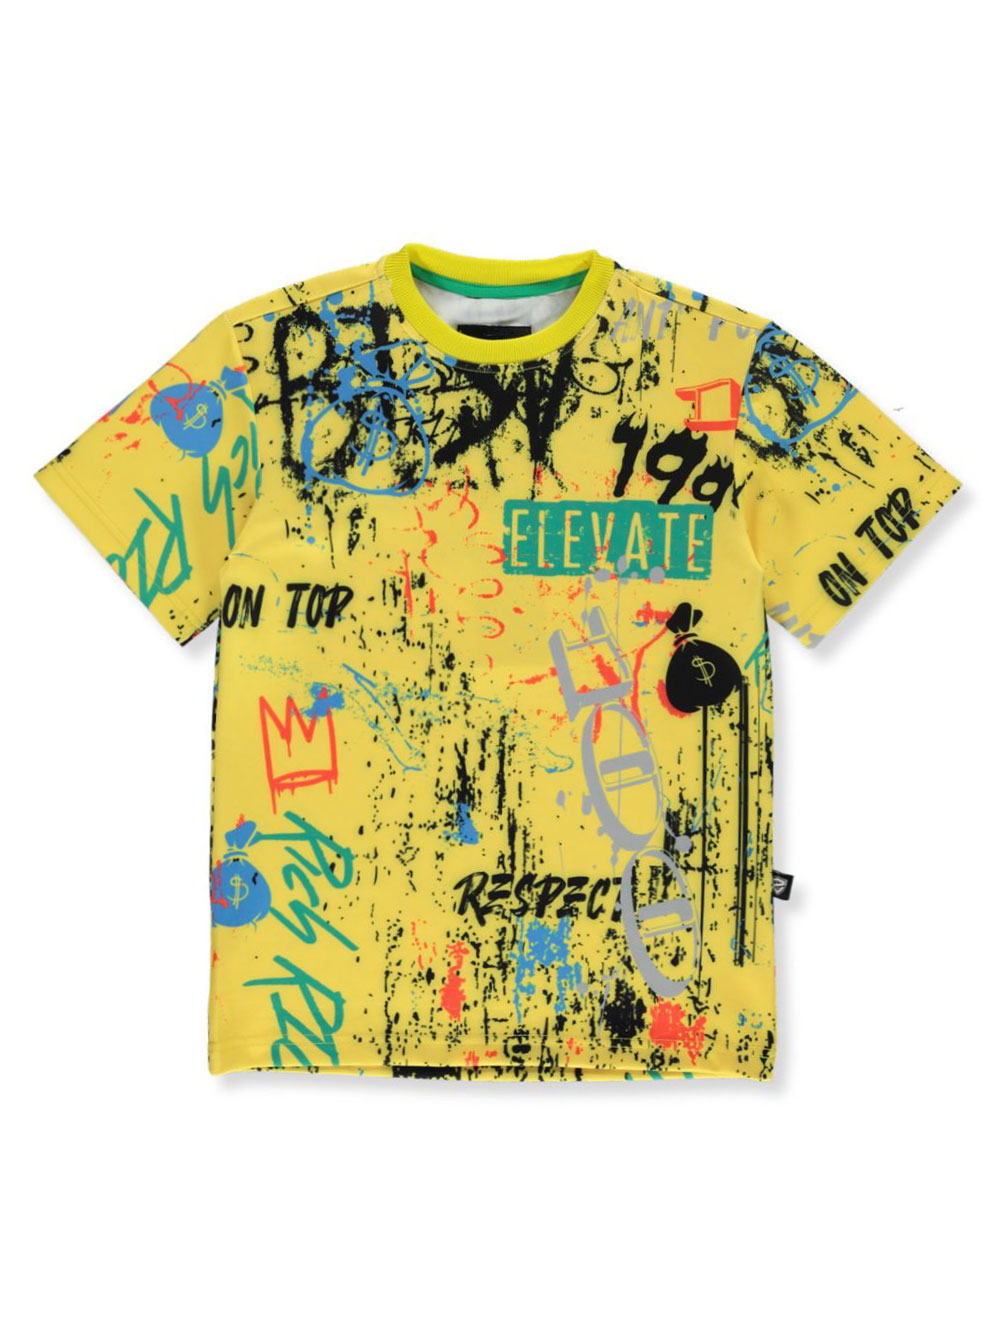 Size 18 T-Shirts for Boys